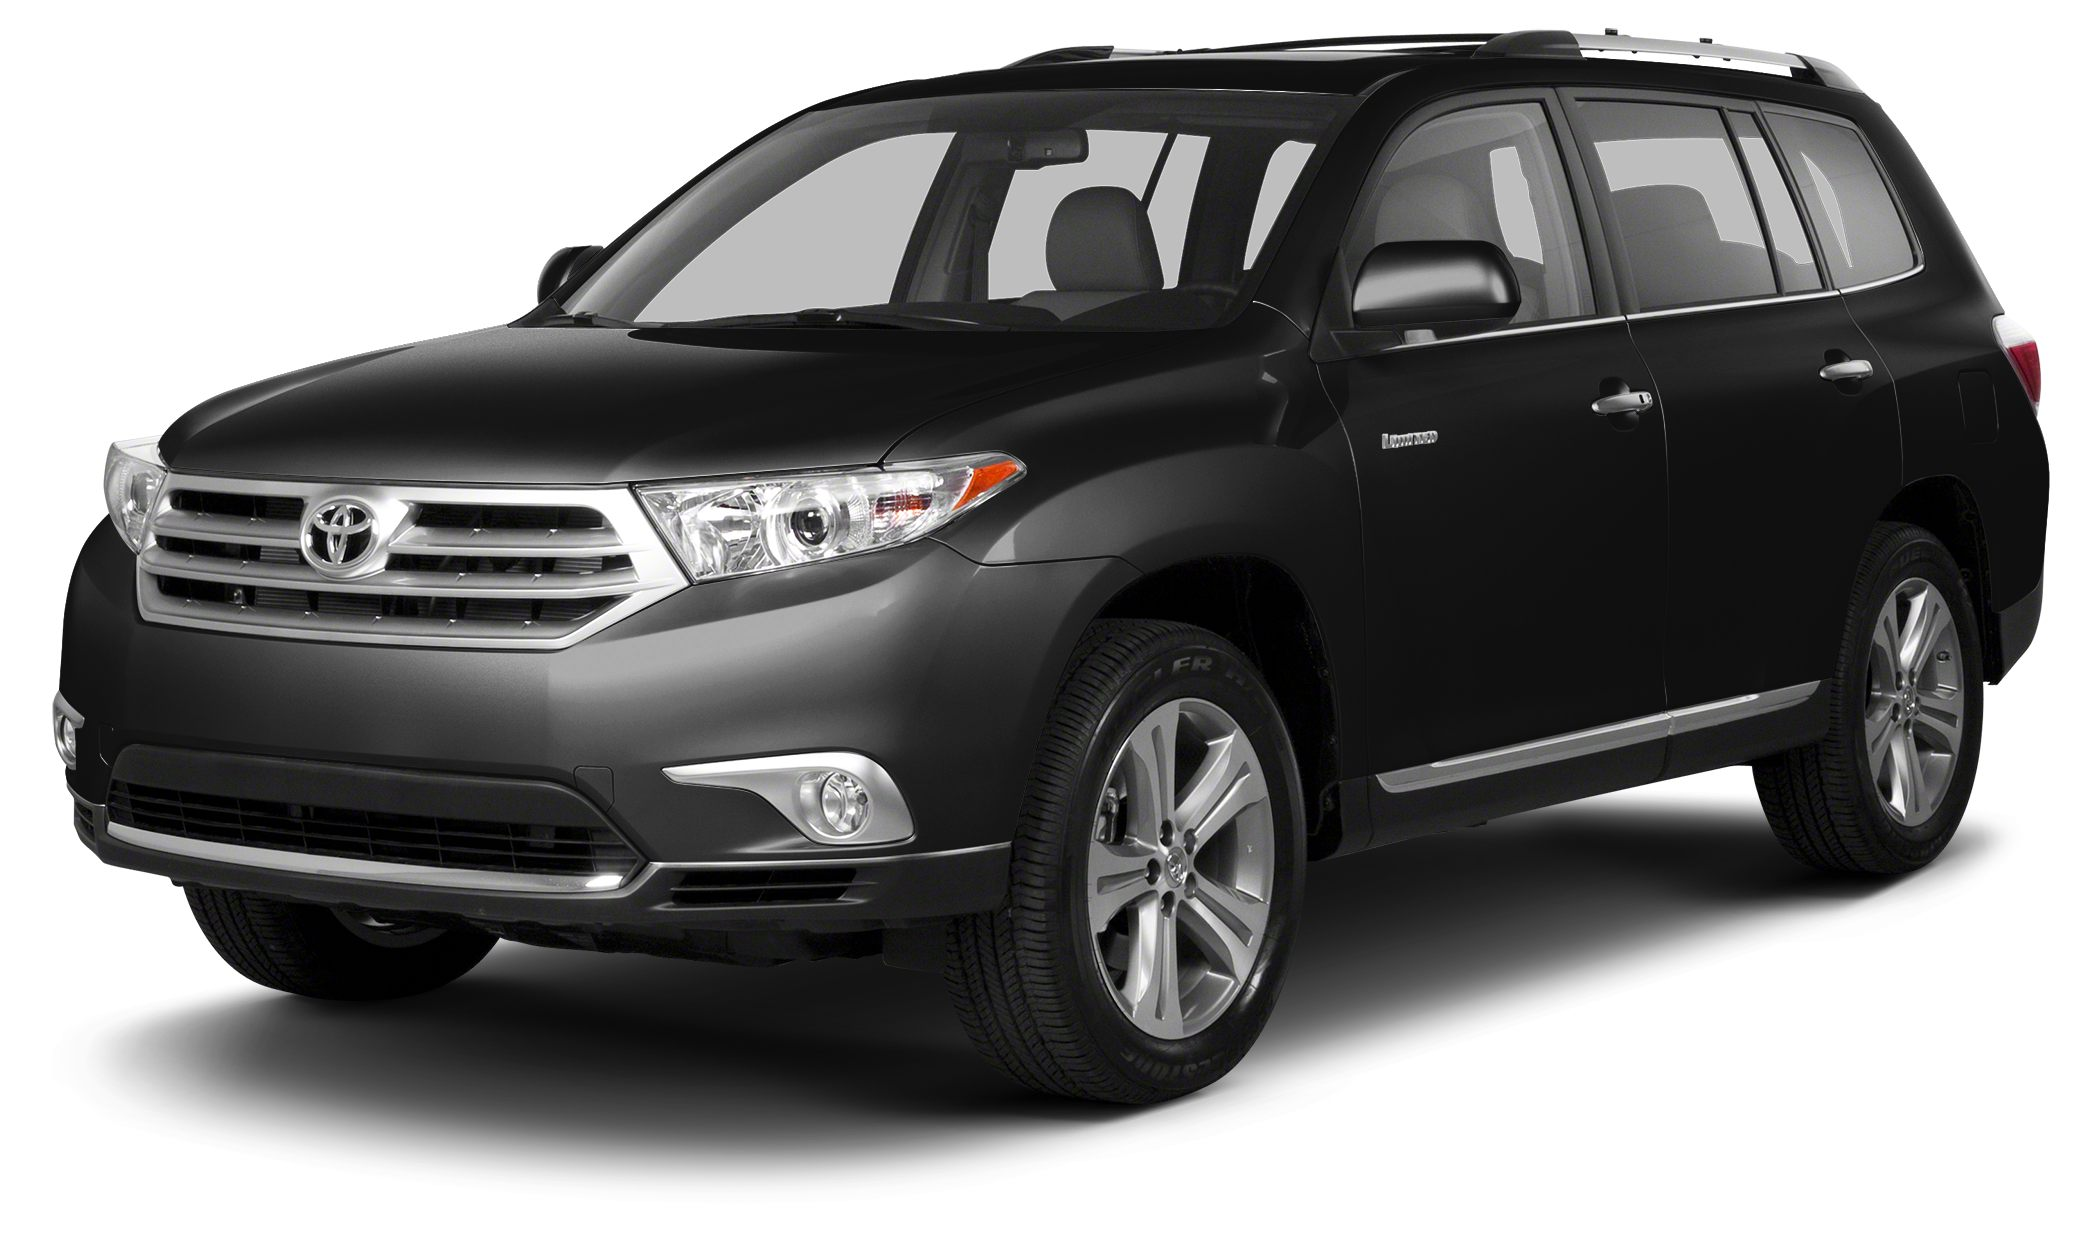 2013 Toyota Highlander Limited Navigation Youll NEVER pay too much at Classic of Texoma This wo